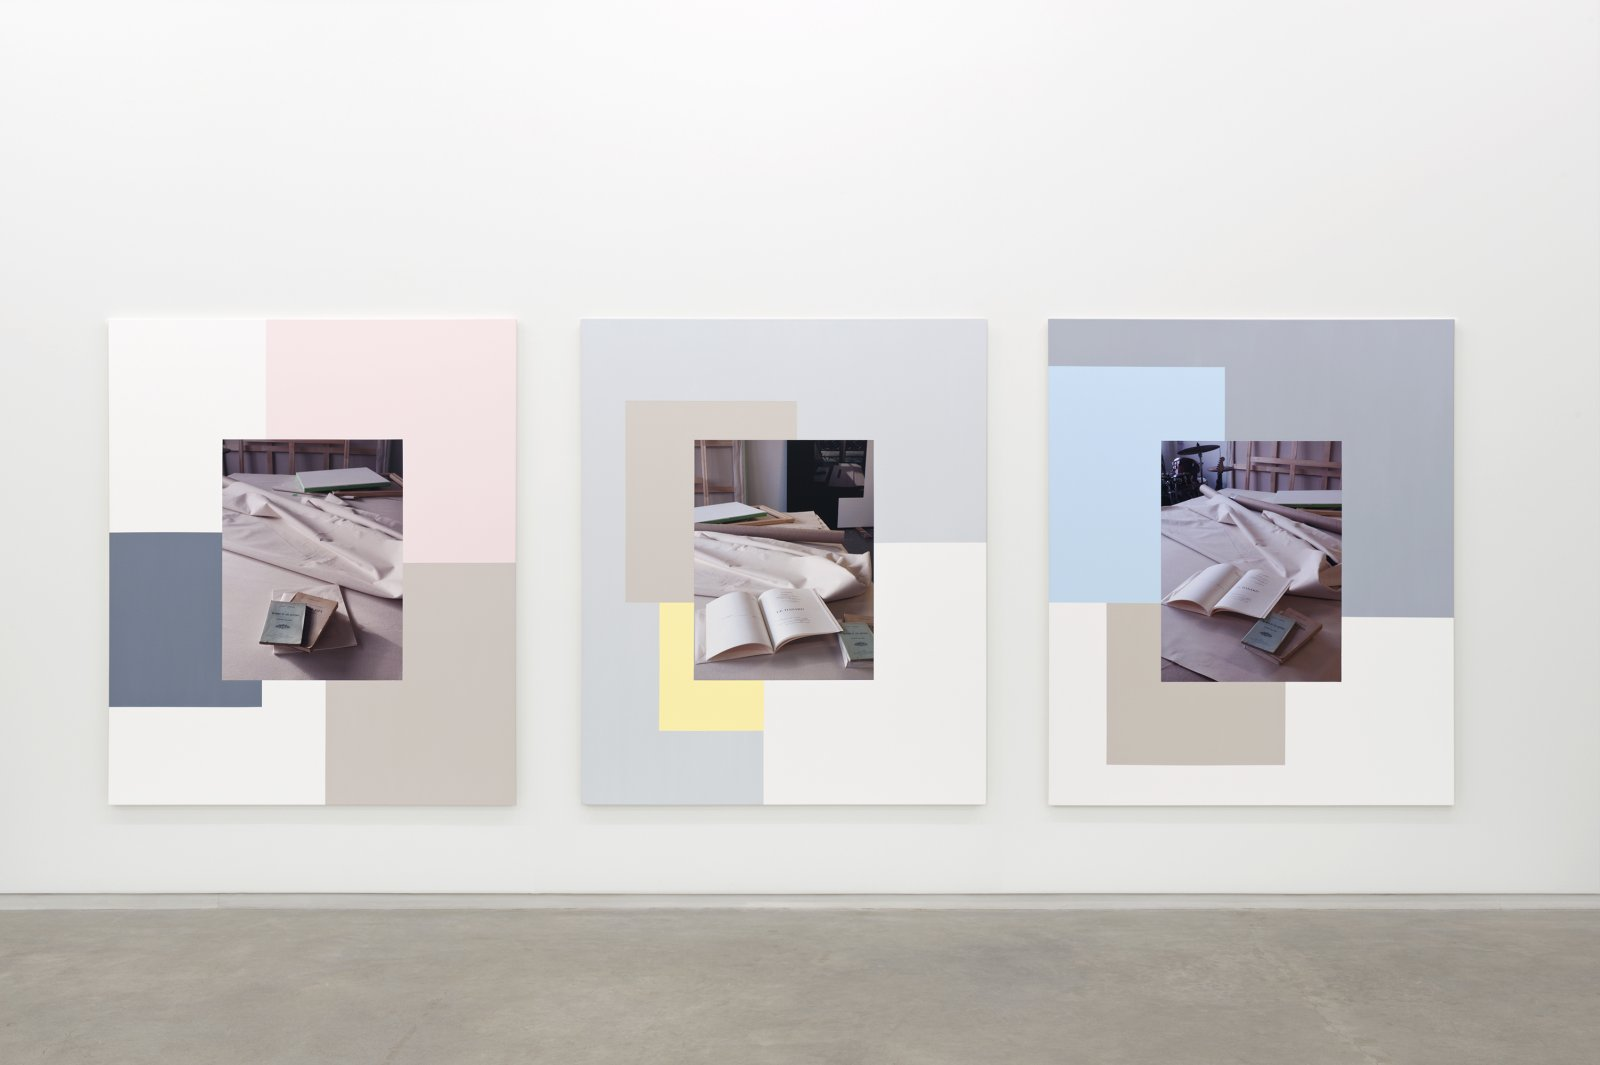 Ian Wallace,Table with Un Coup de Des I, II, III, 2011,3 photolaminate with acrylic on canvas,each 72 x 60 in. (183 x 152 cm)